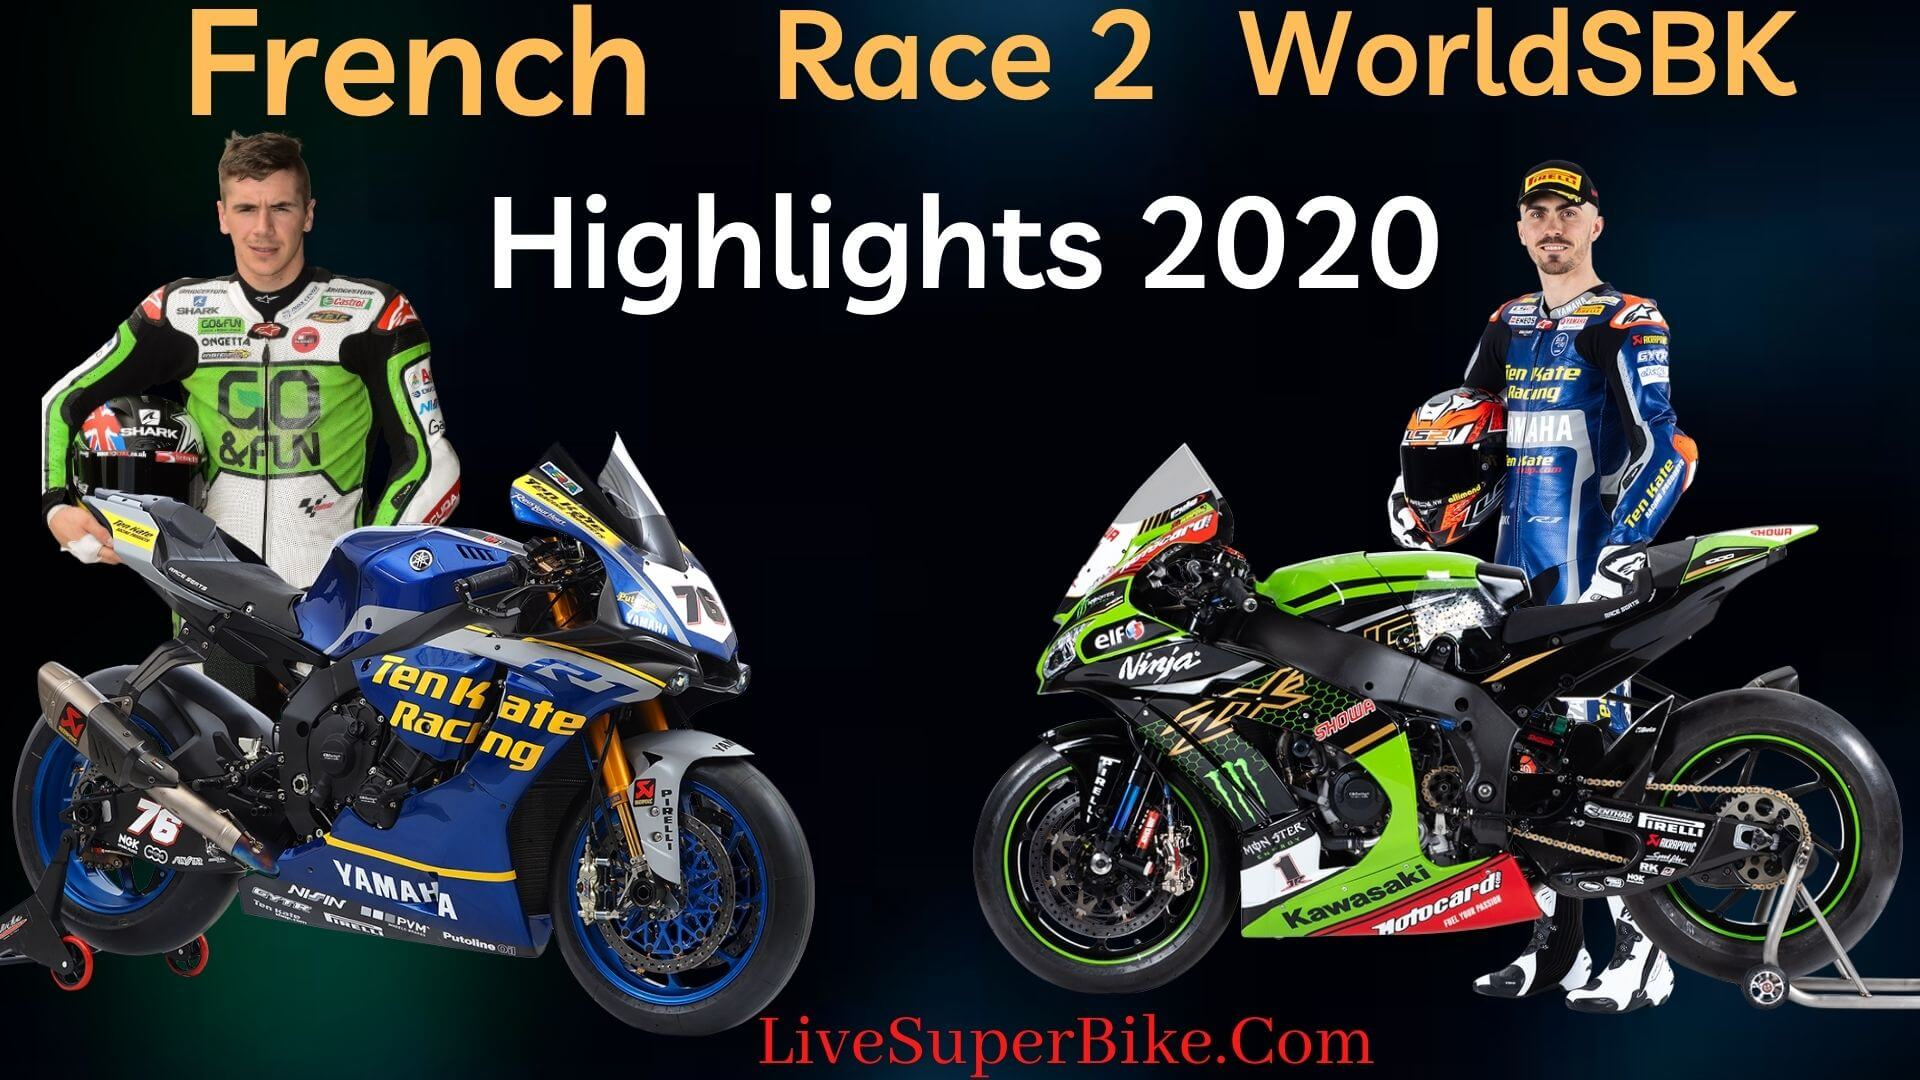 French WorldSBK Race 2 Highlights 2020